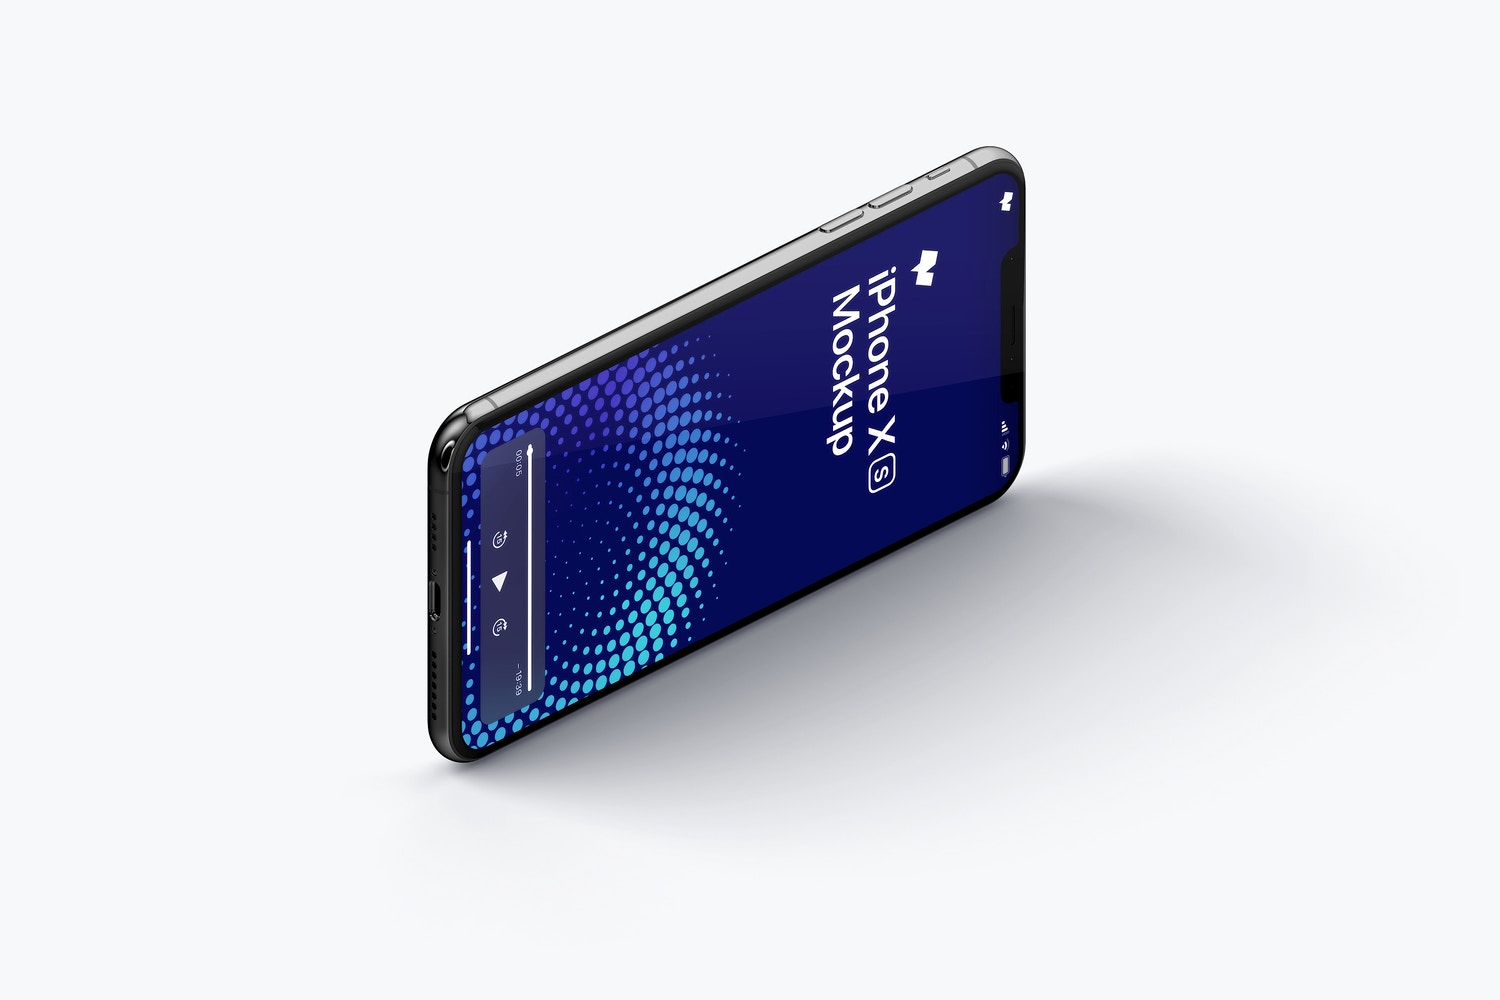 iPhone XS Max Mockup, Isometric Right View 03 (1) by Original Mockups on Original Mockups